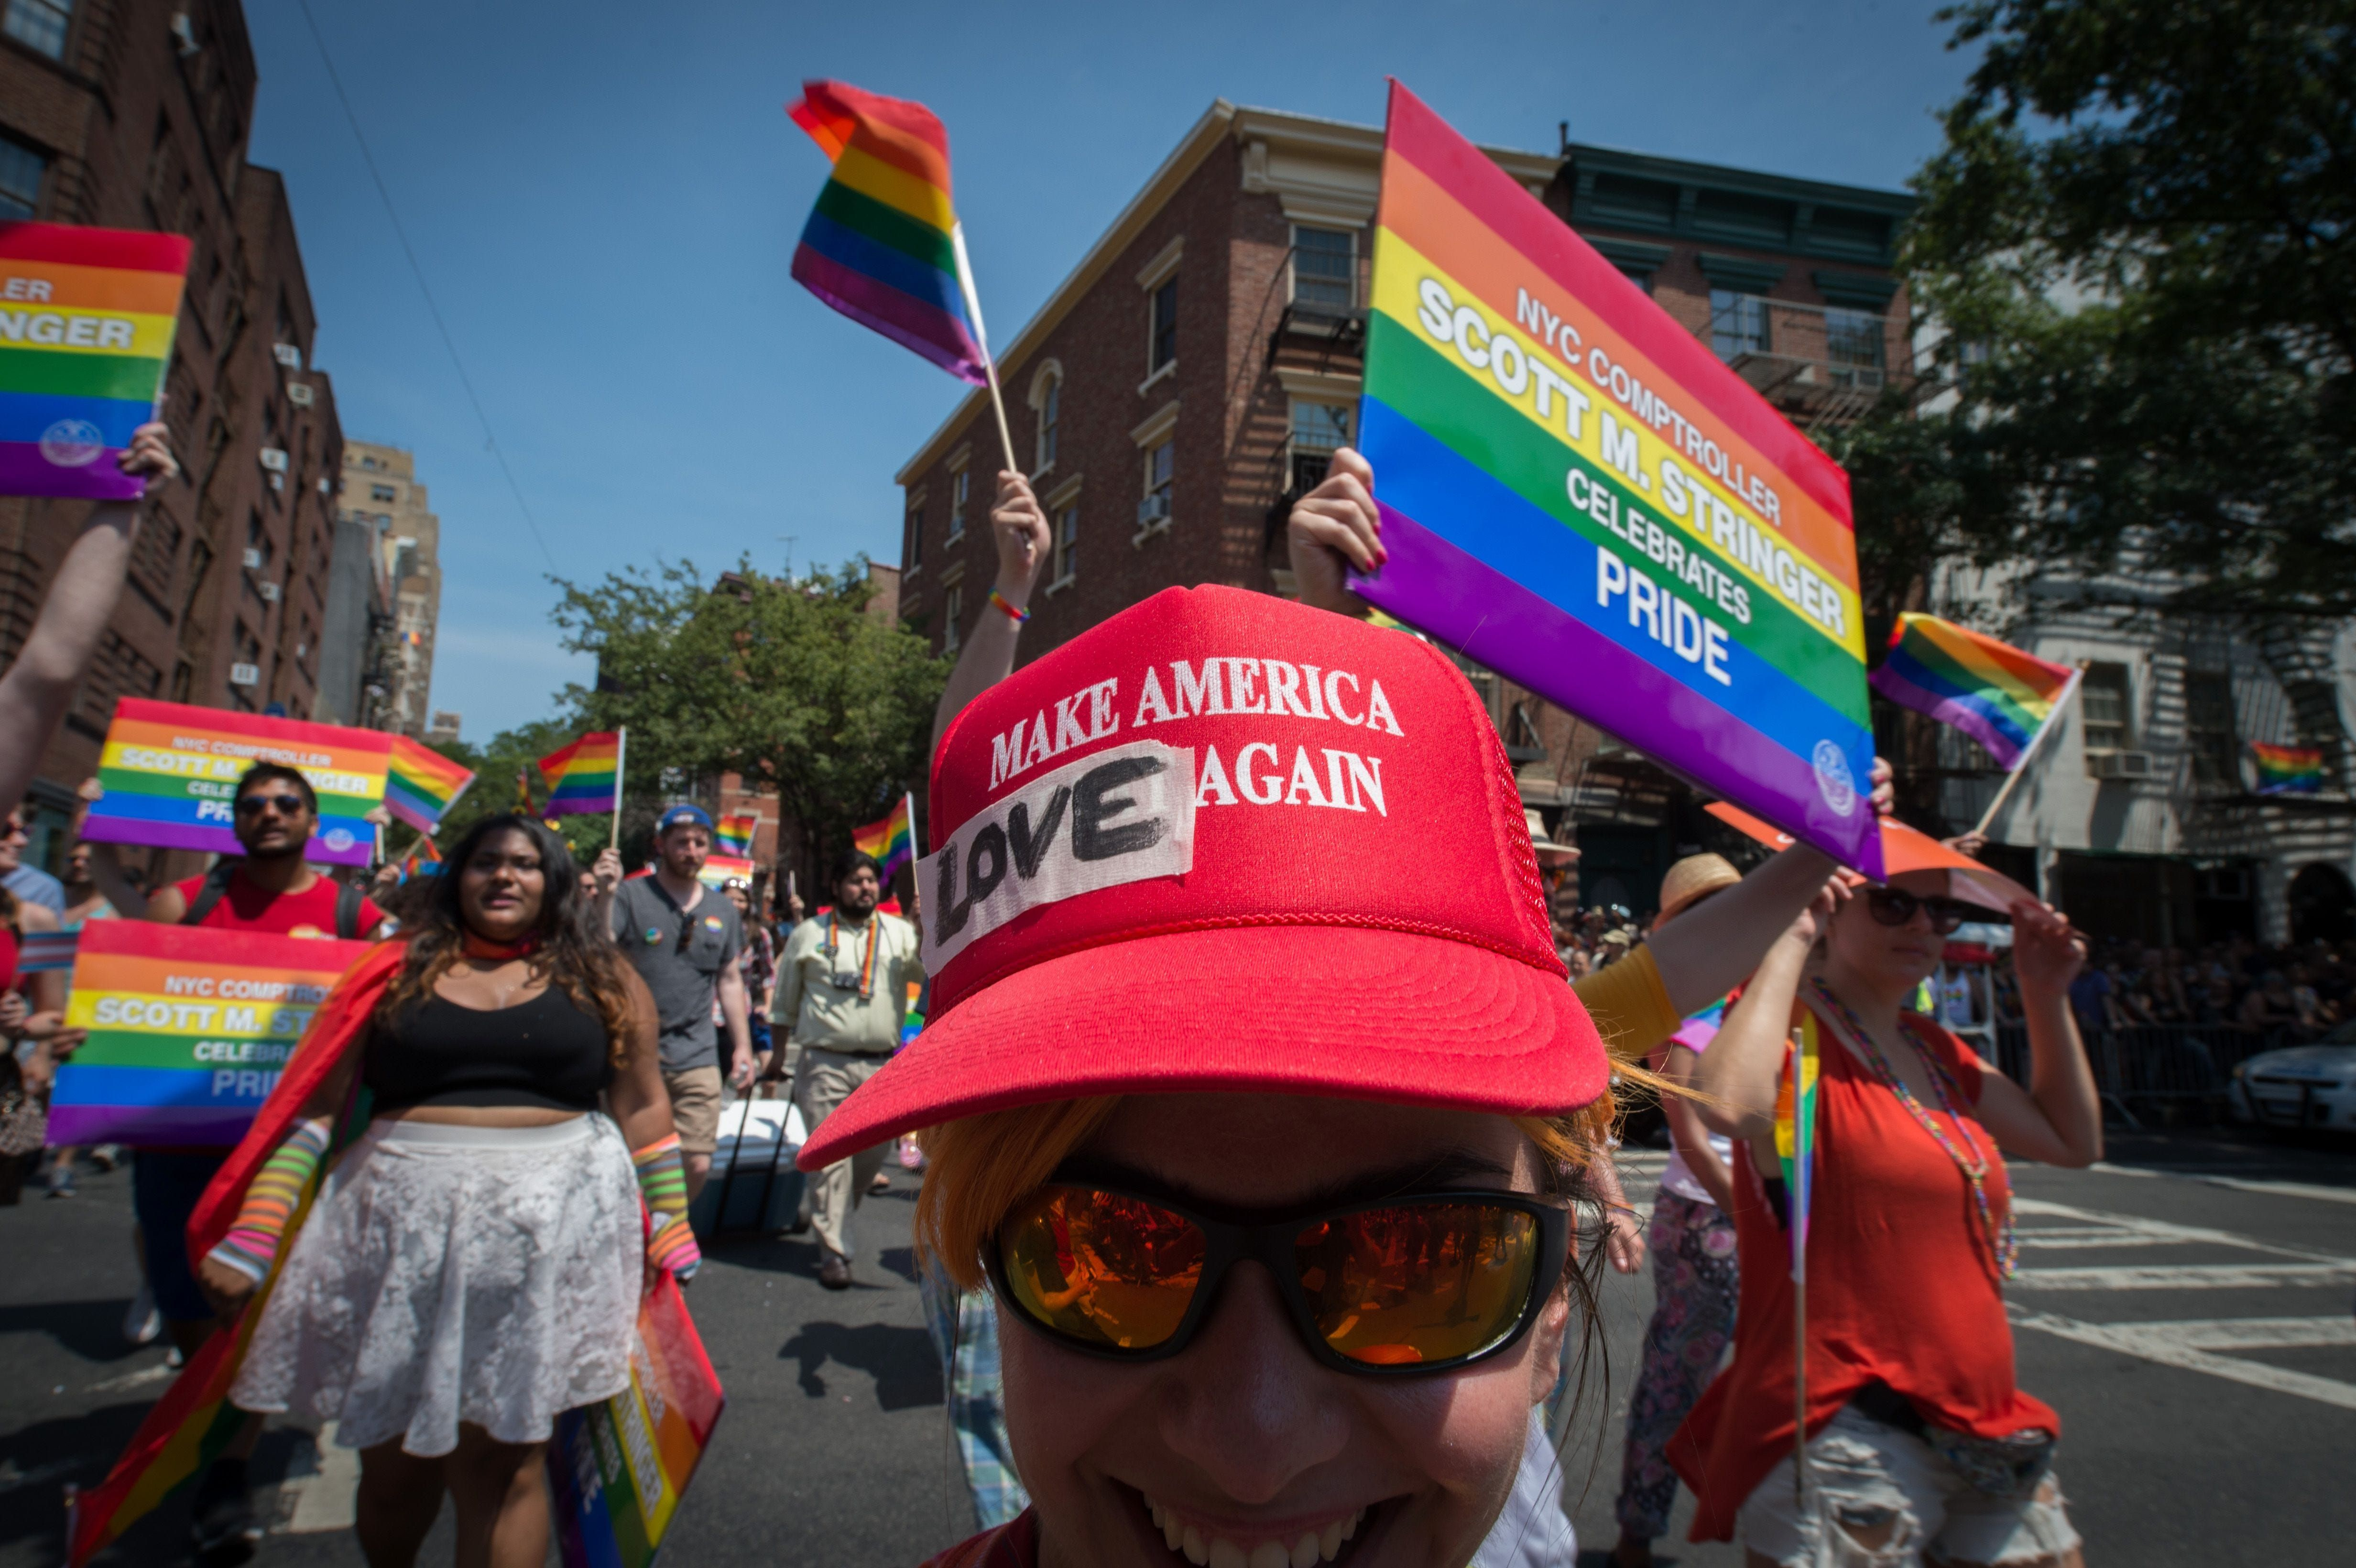 Trump plan would hamper LGBTQ health care access. This is